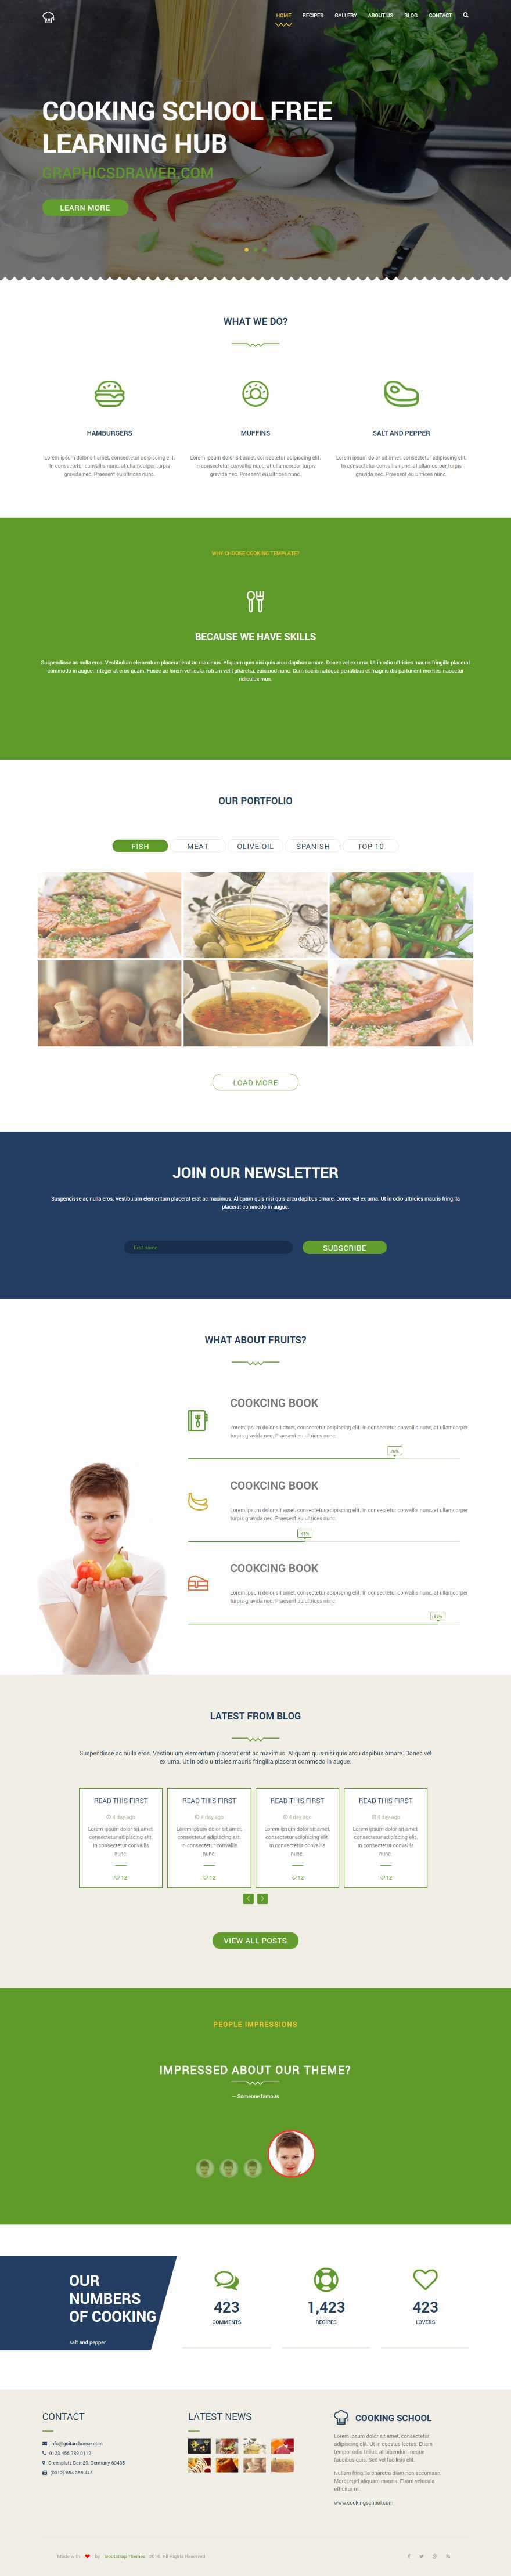 We Have Created Free Html Cooking School Website You Can Download The Html For Your Cooking Learning School Templ School Template Free Learning School Website